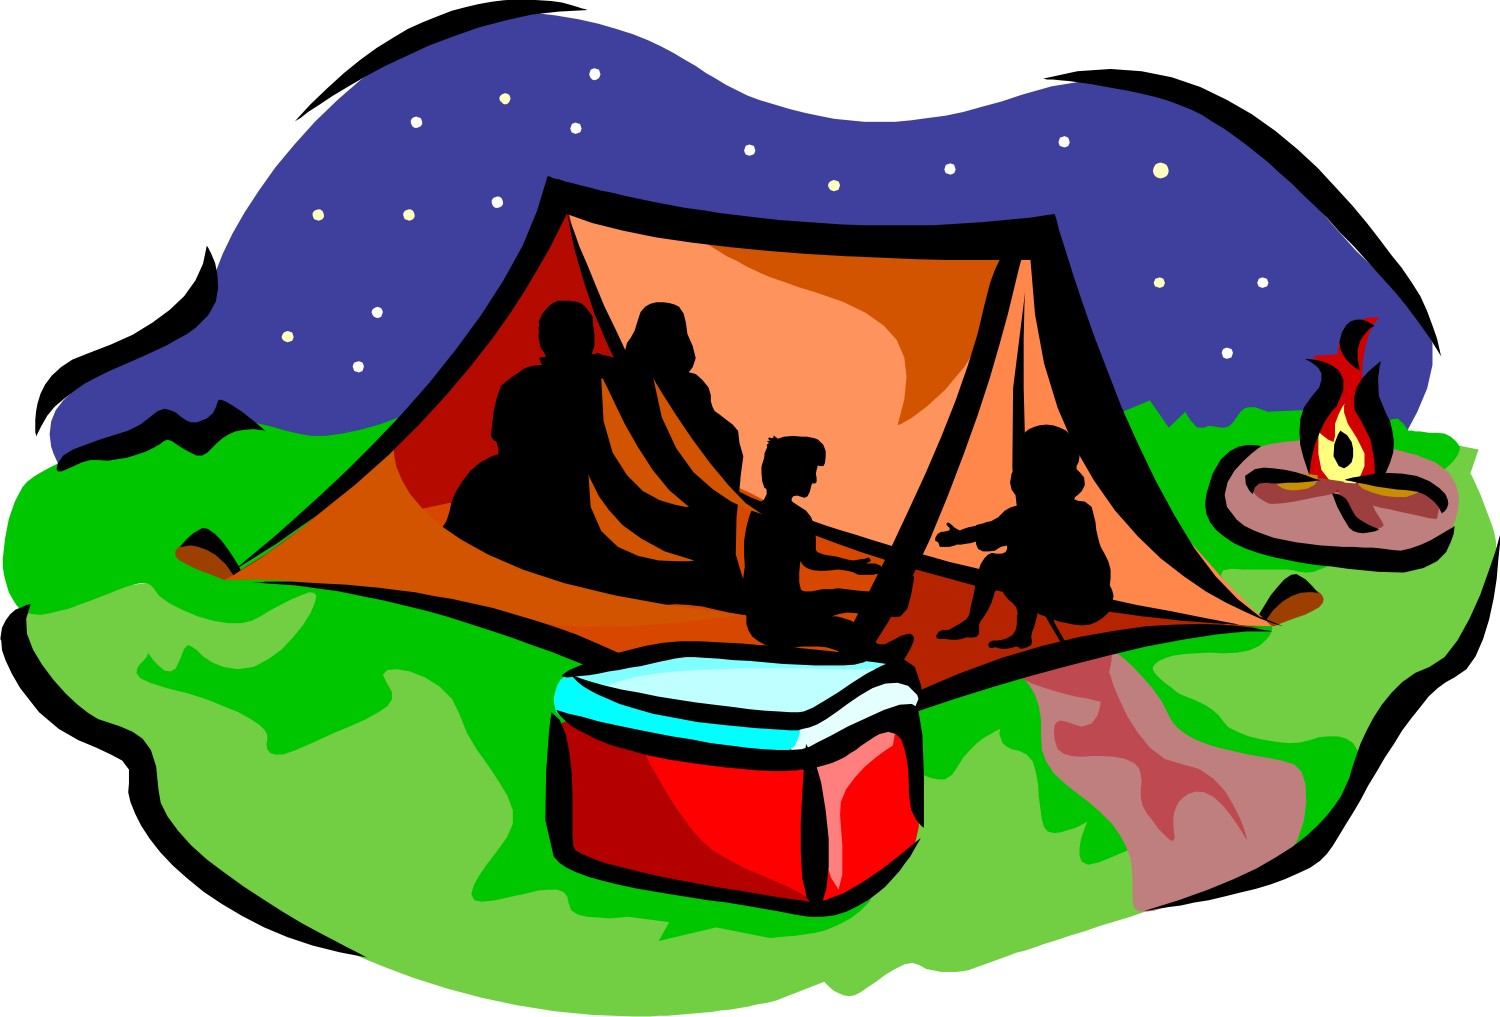 Campfire Tent Clip Art Free Cliparts That You Can Download To You